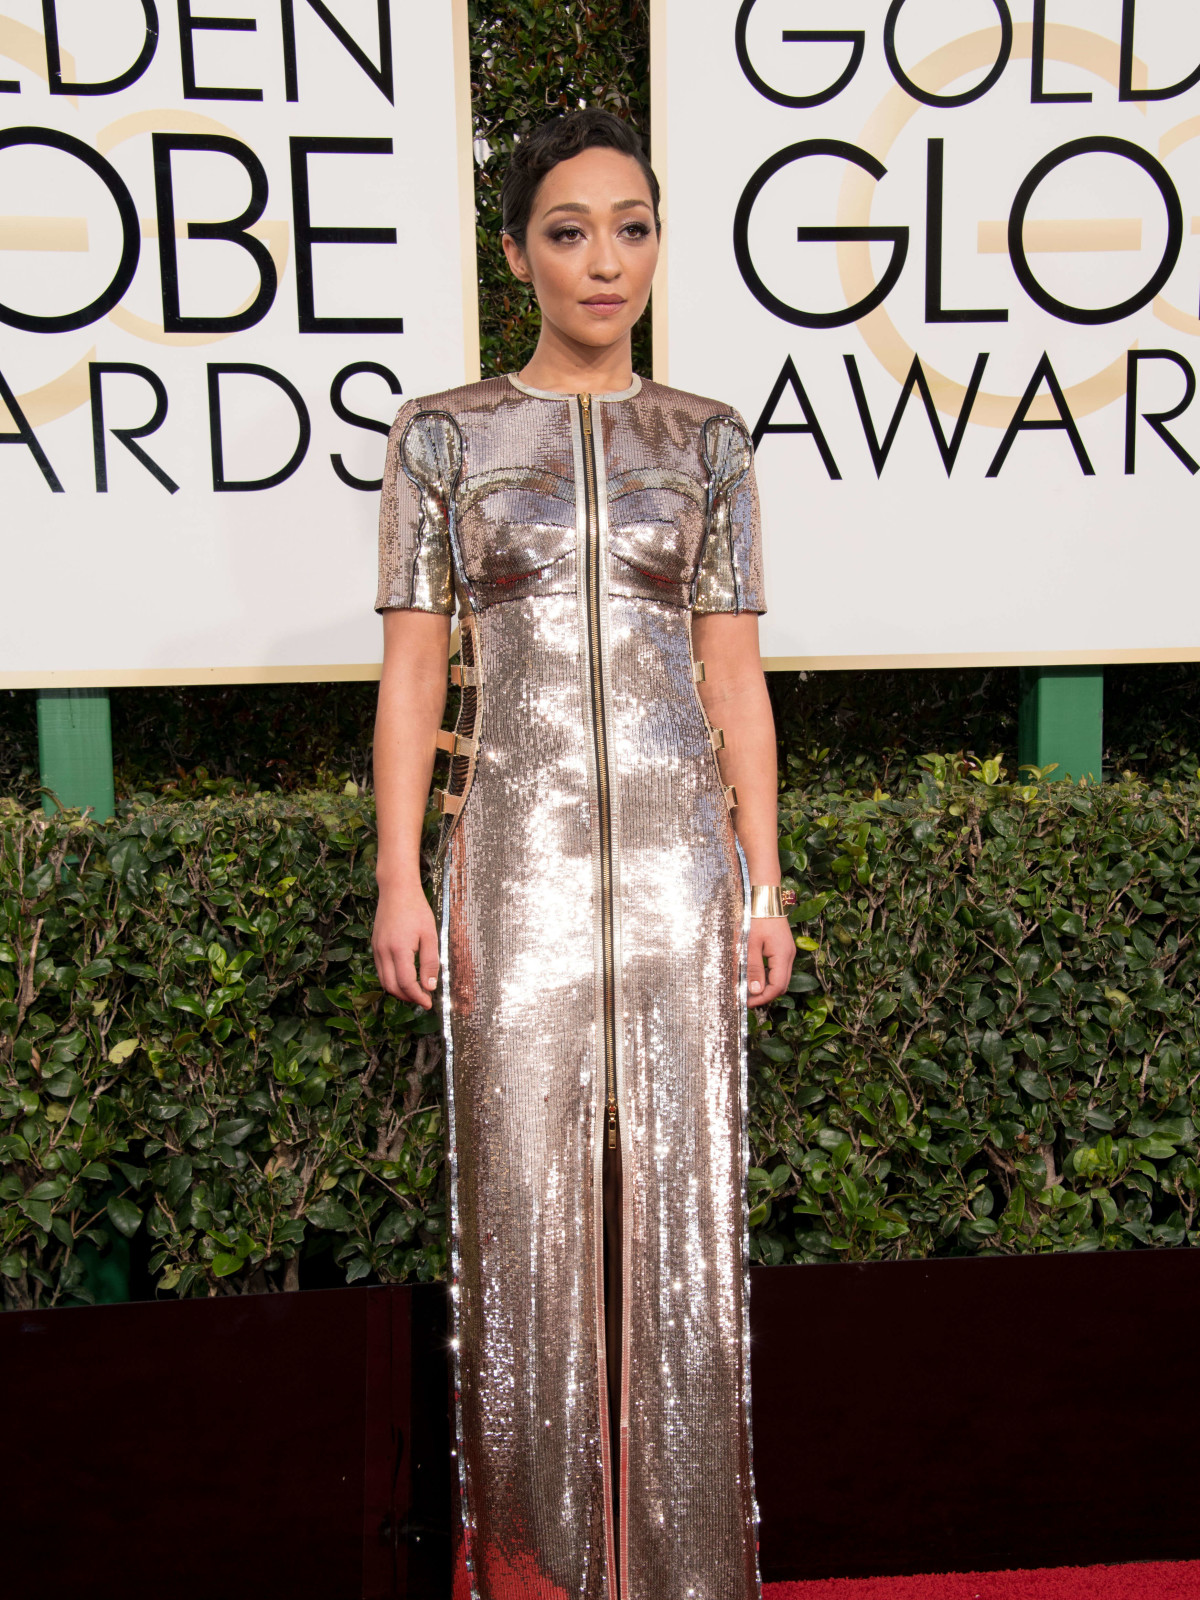 Ruth Negga at Golden Globes 2017